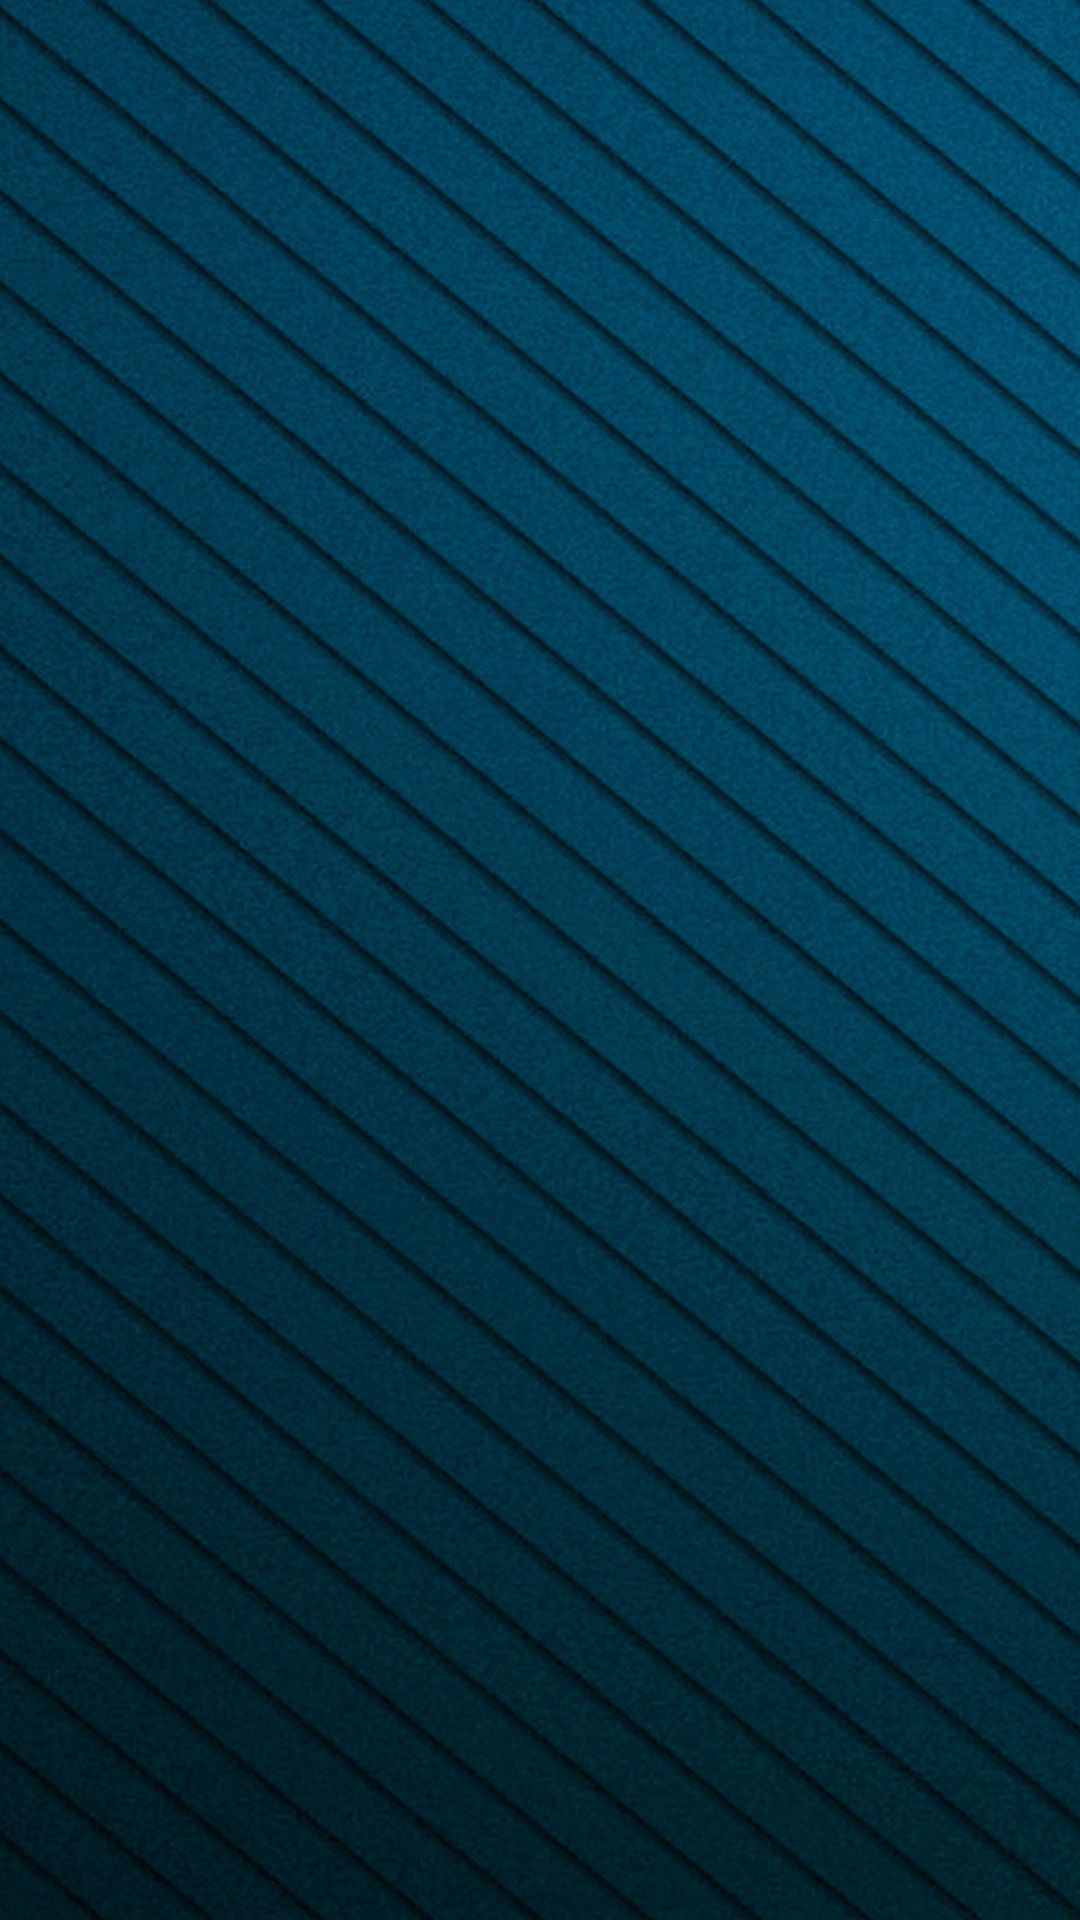 Samsung Galaxy S5 Wallpapers Texture 25 Shy Android 1080x1920